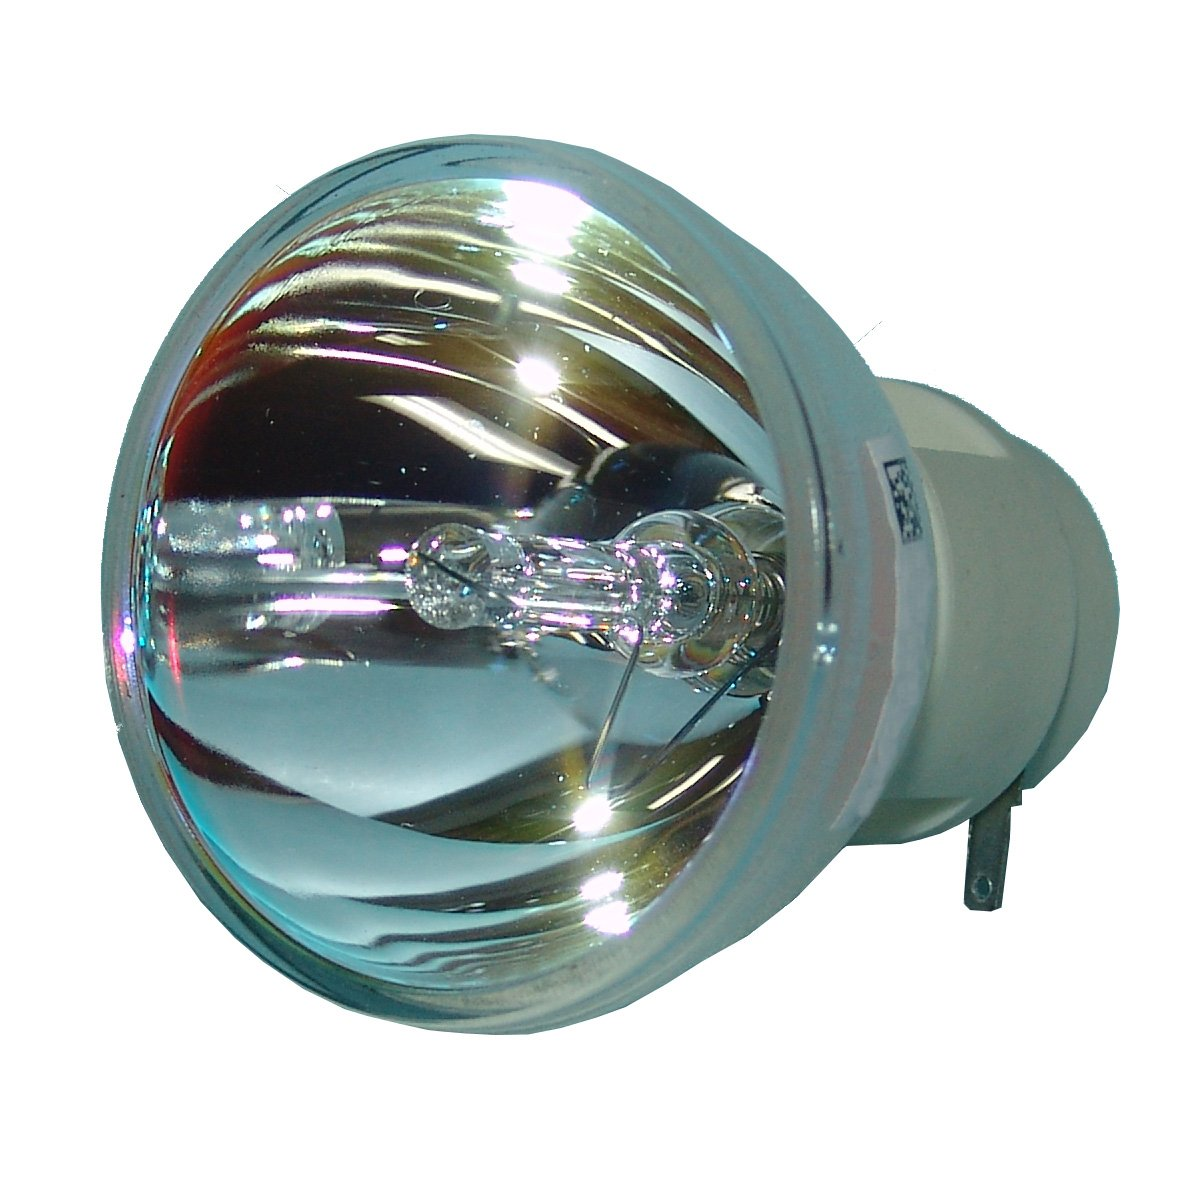 SmartBoard UX60 Projector Brand New High Quality Original Projector Bulb by SMART BOARD